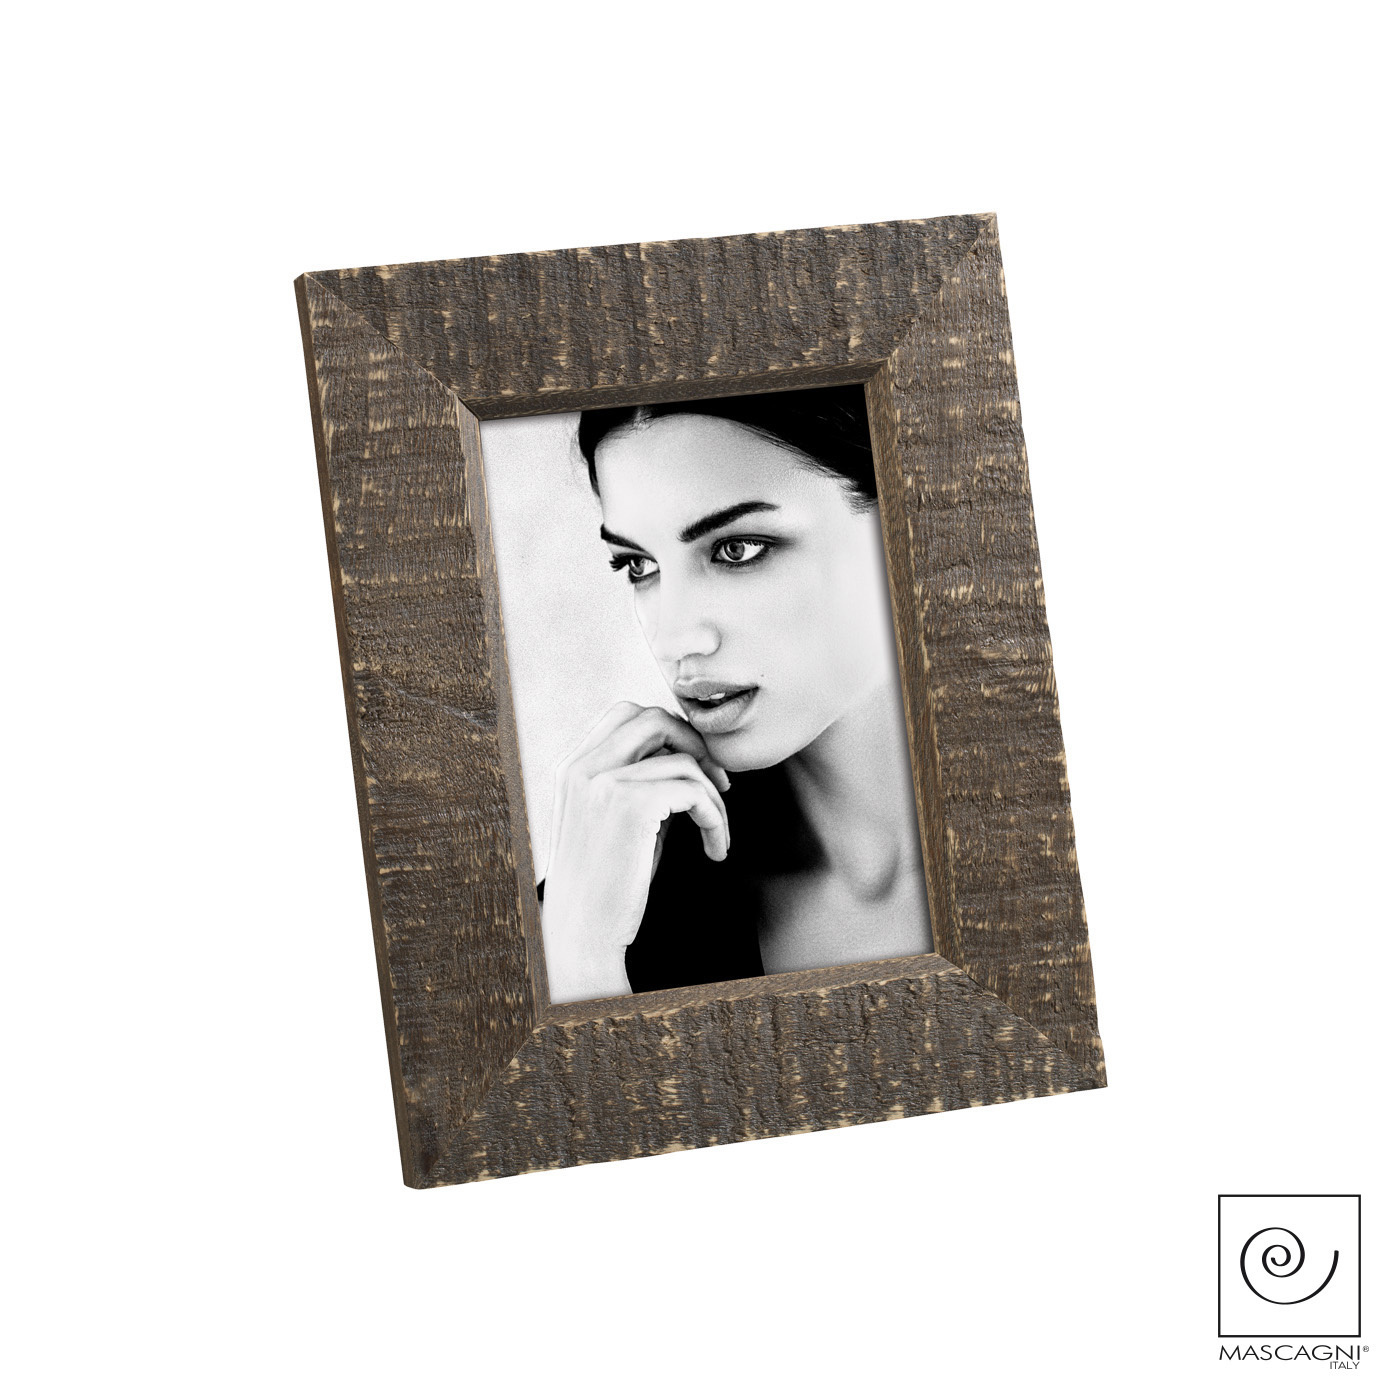 Art Mascagni A966 PHOTO FRAME 13X18 - COL.MOOR